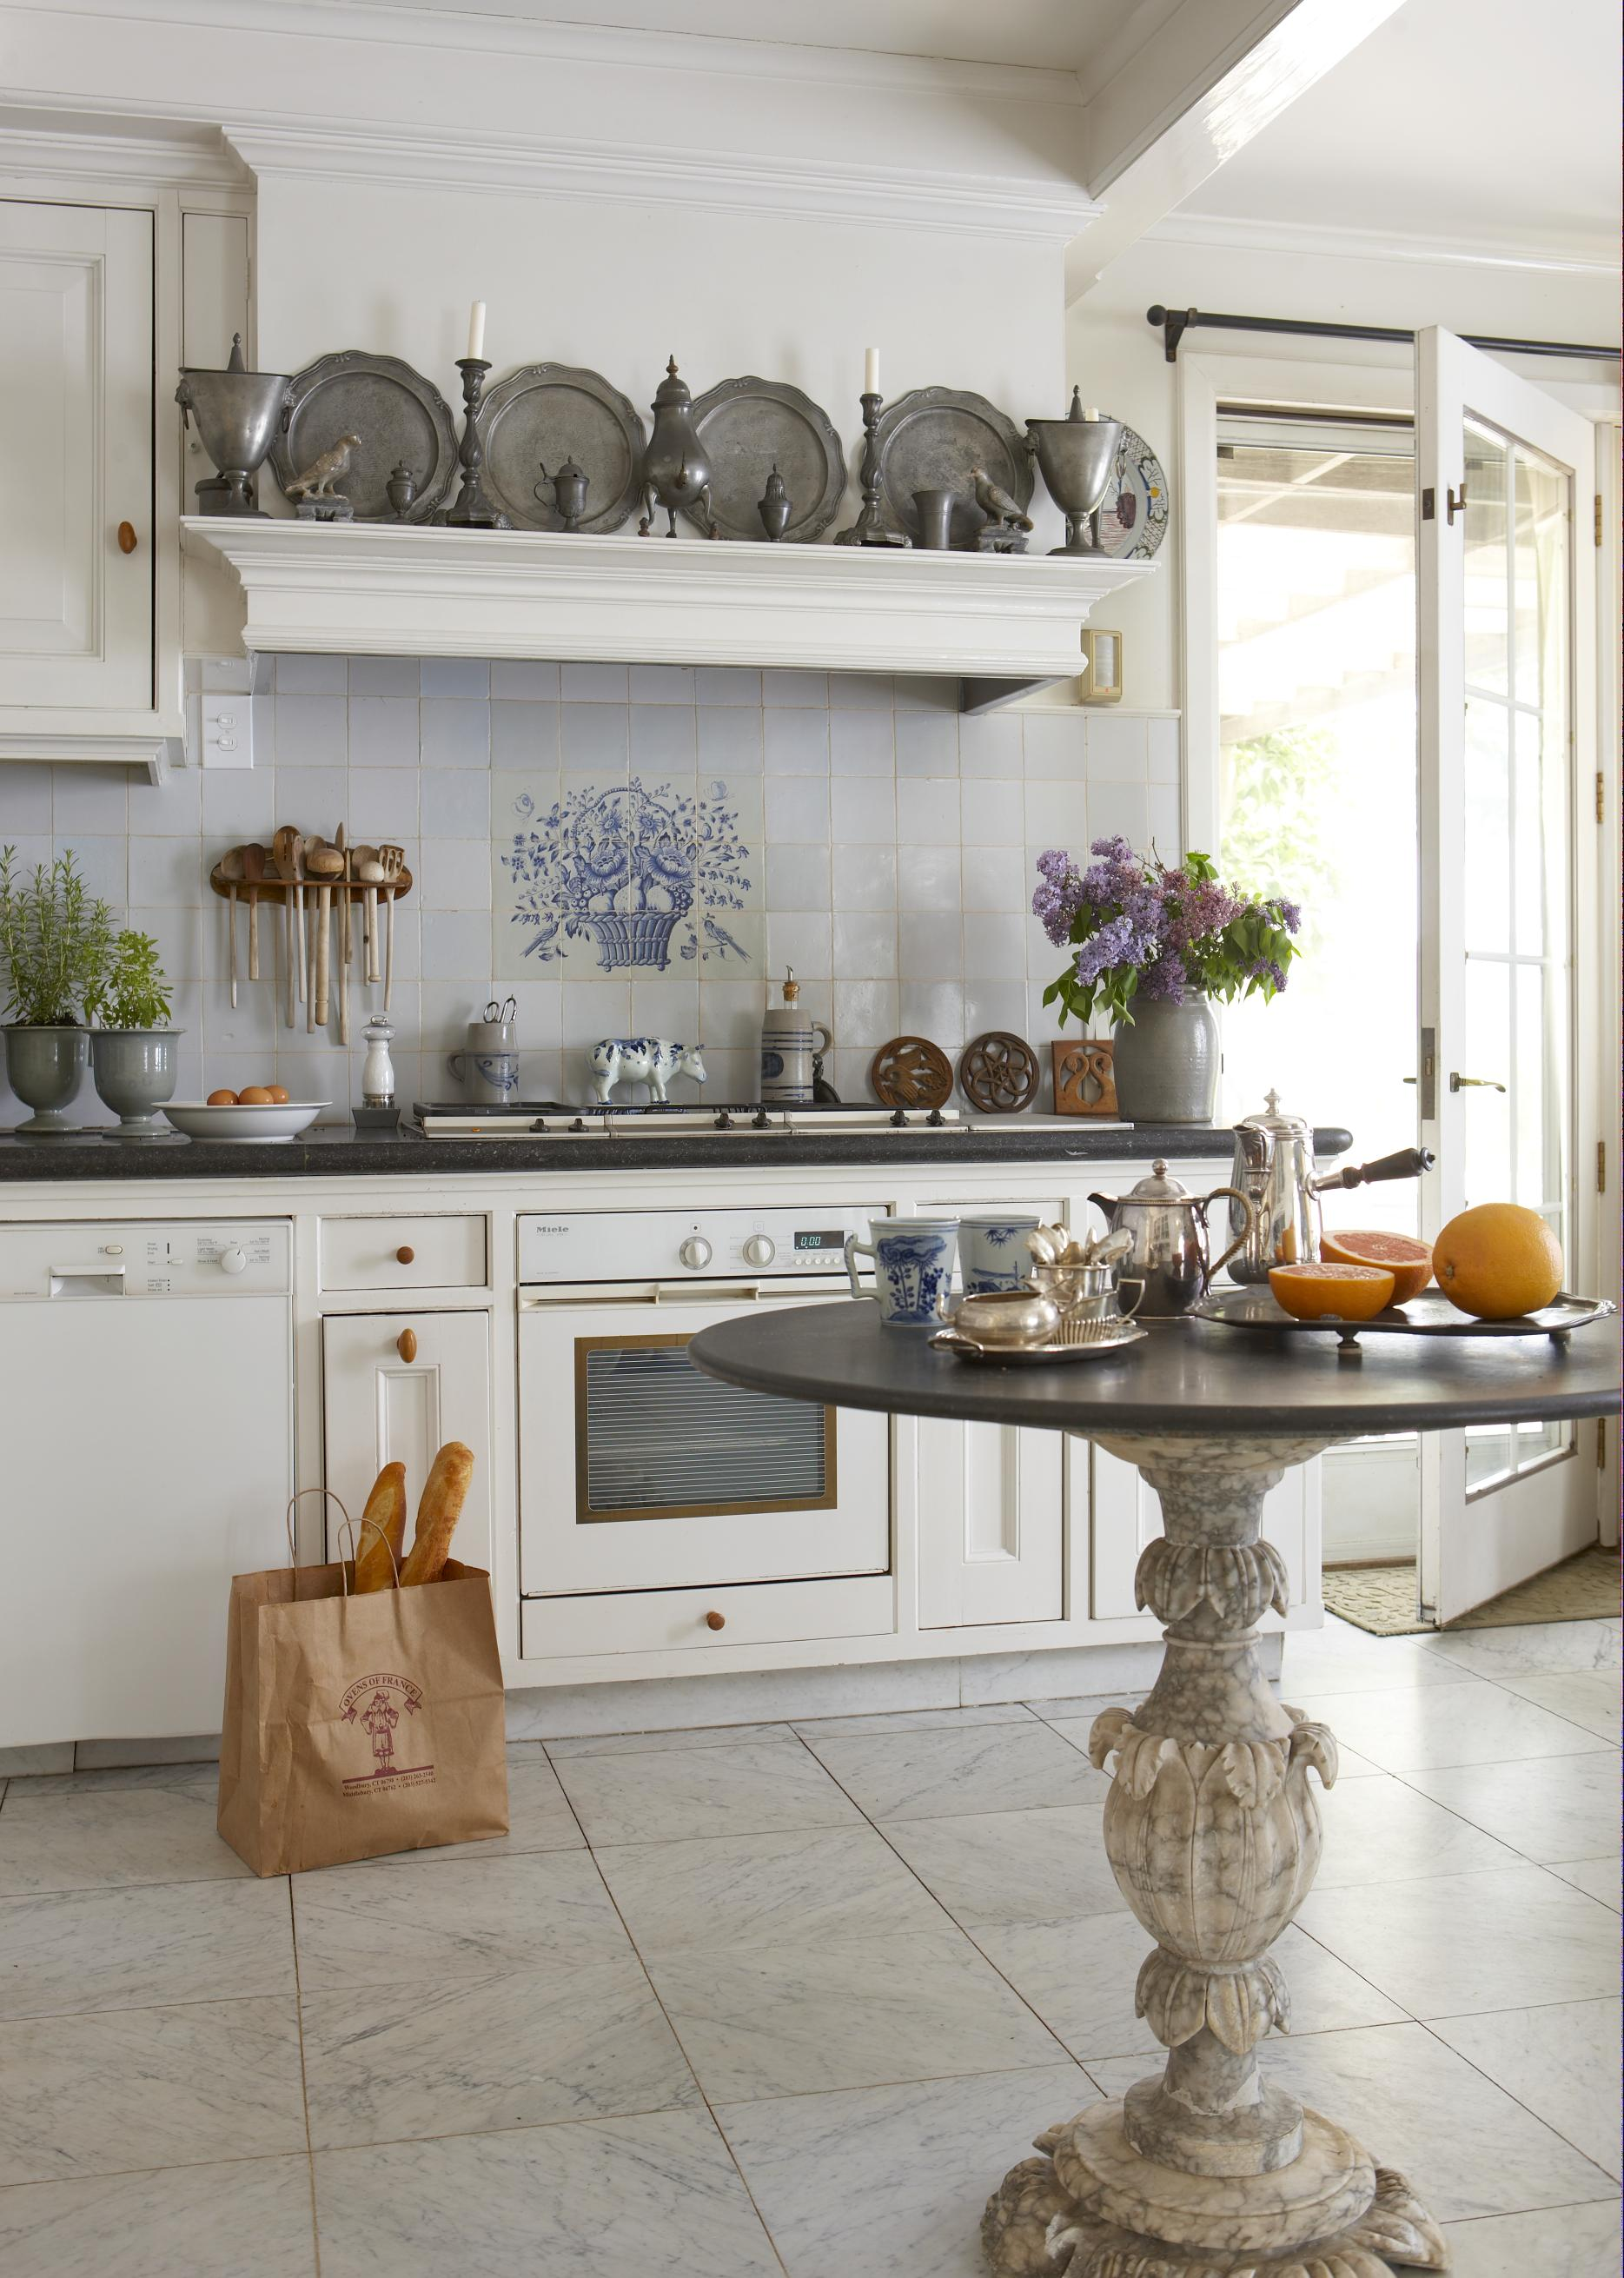 Cucina Interior Design Rustic Country French Kitchens Traditional Home